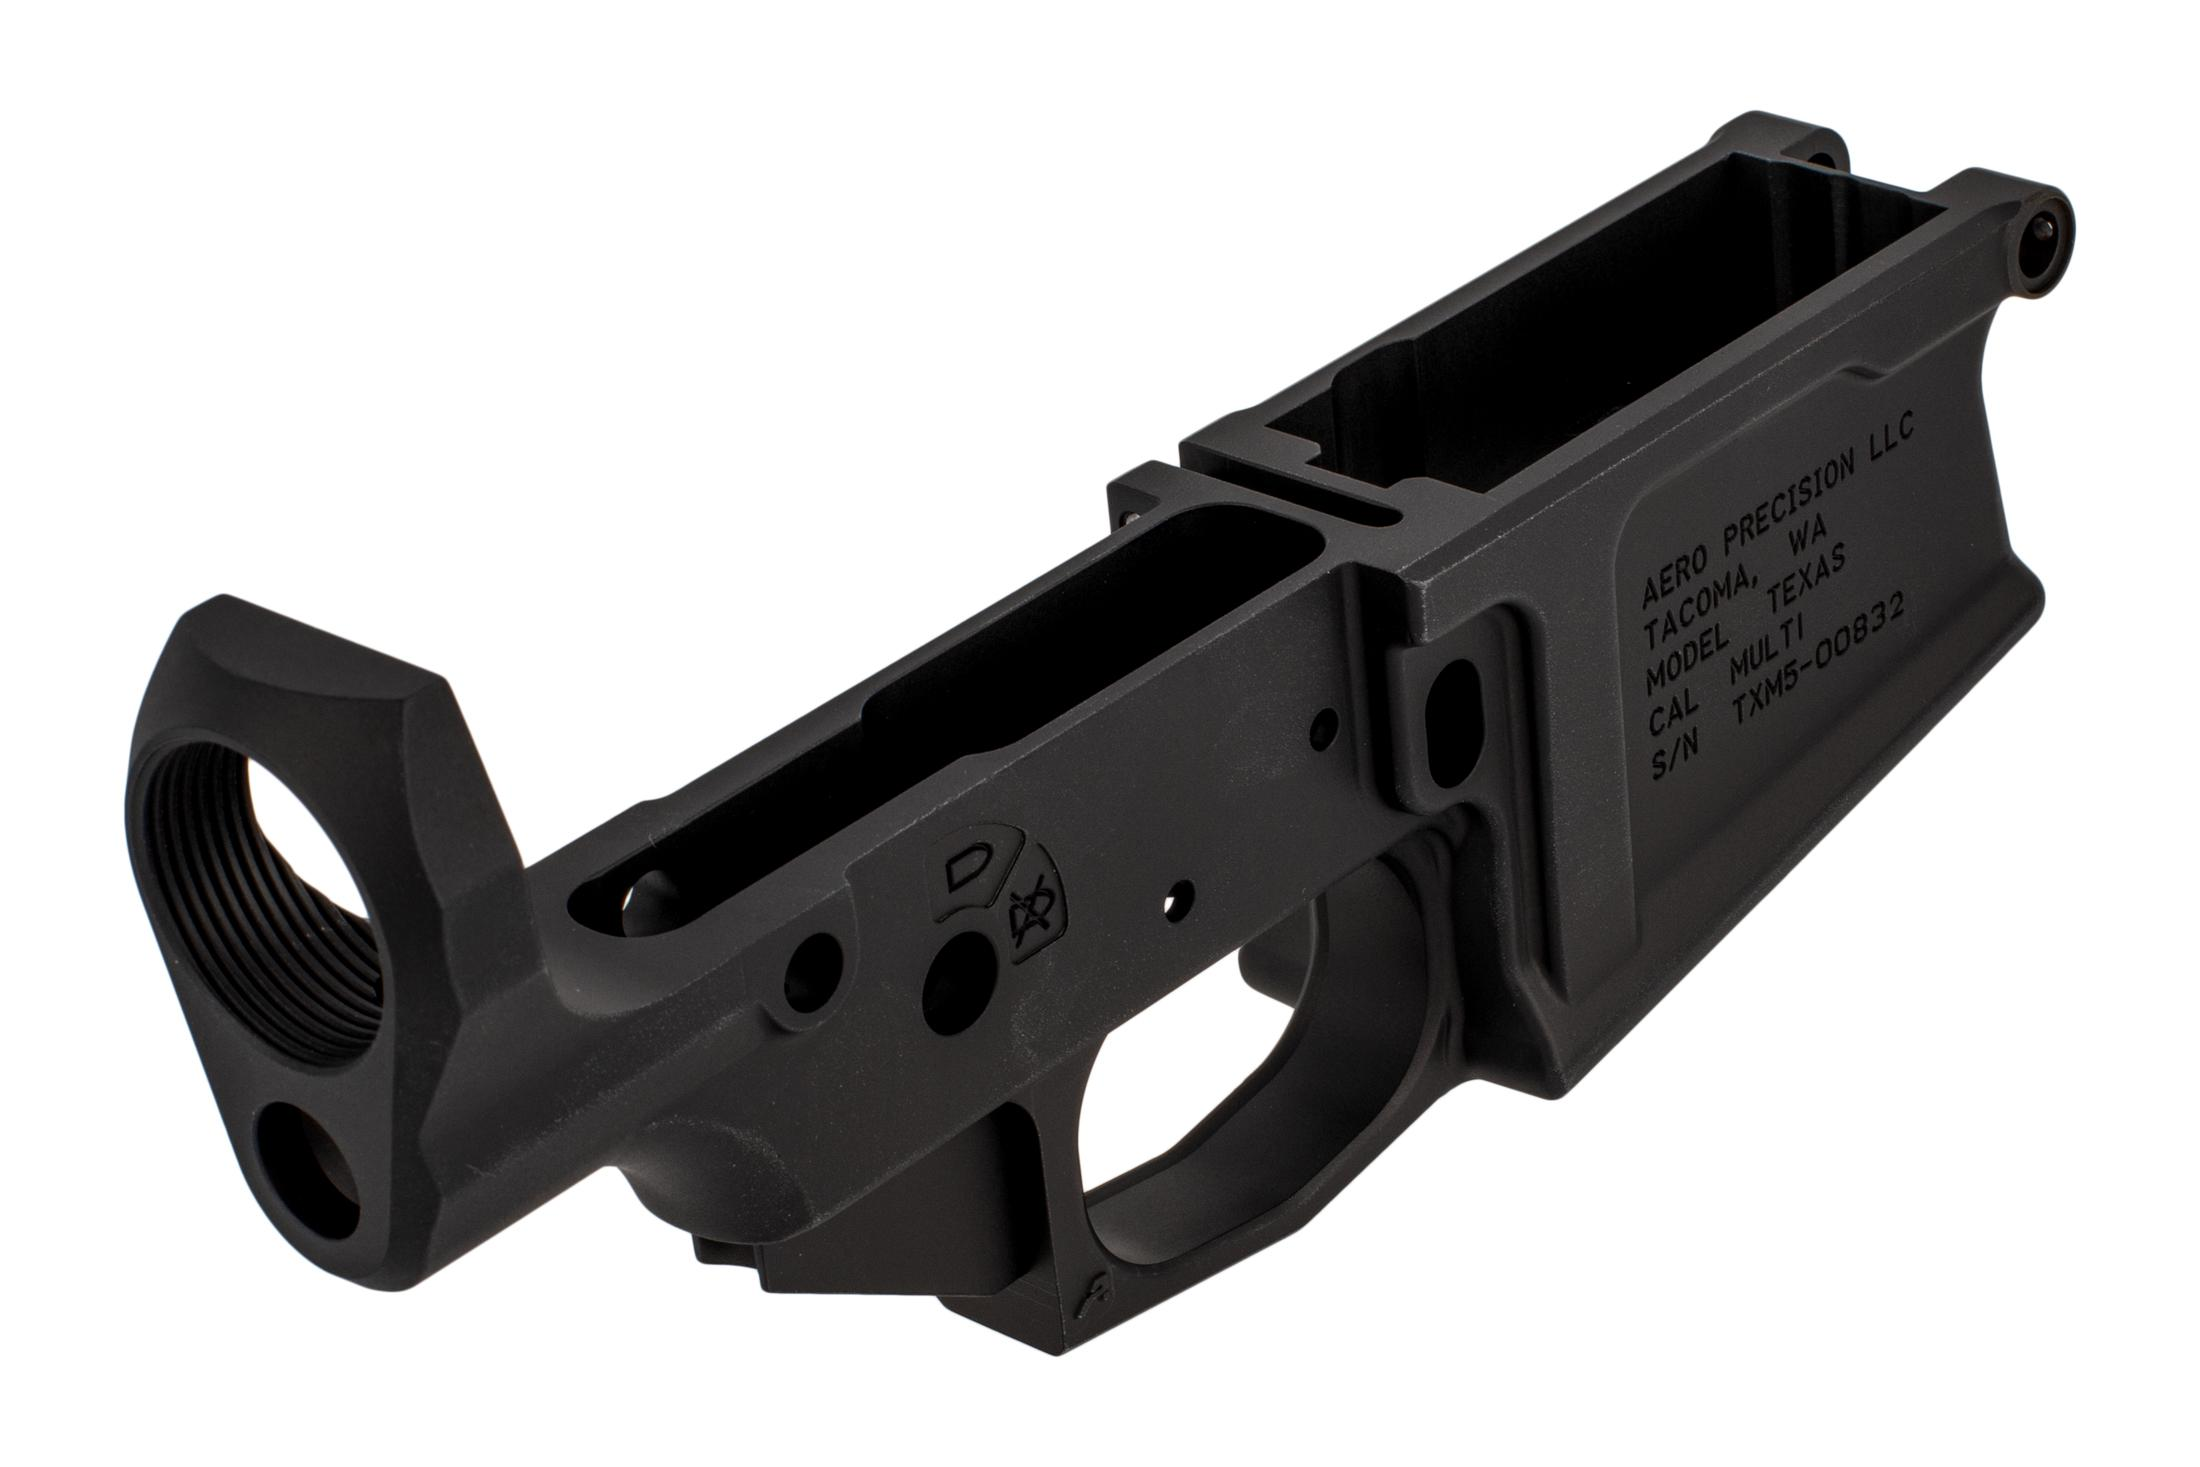 Aero Precision large frame AR-308 lower receiver is compatible with Aero M5 uppers and features a Texas Edition engraving.